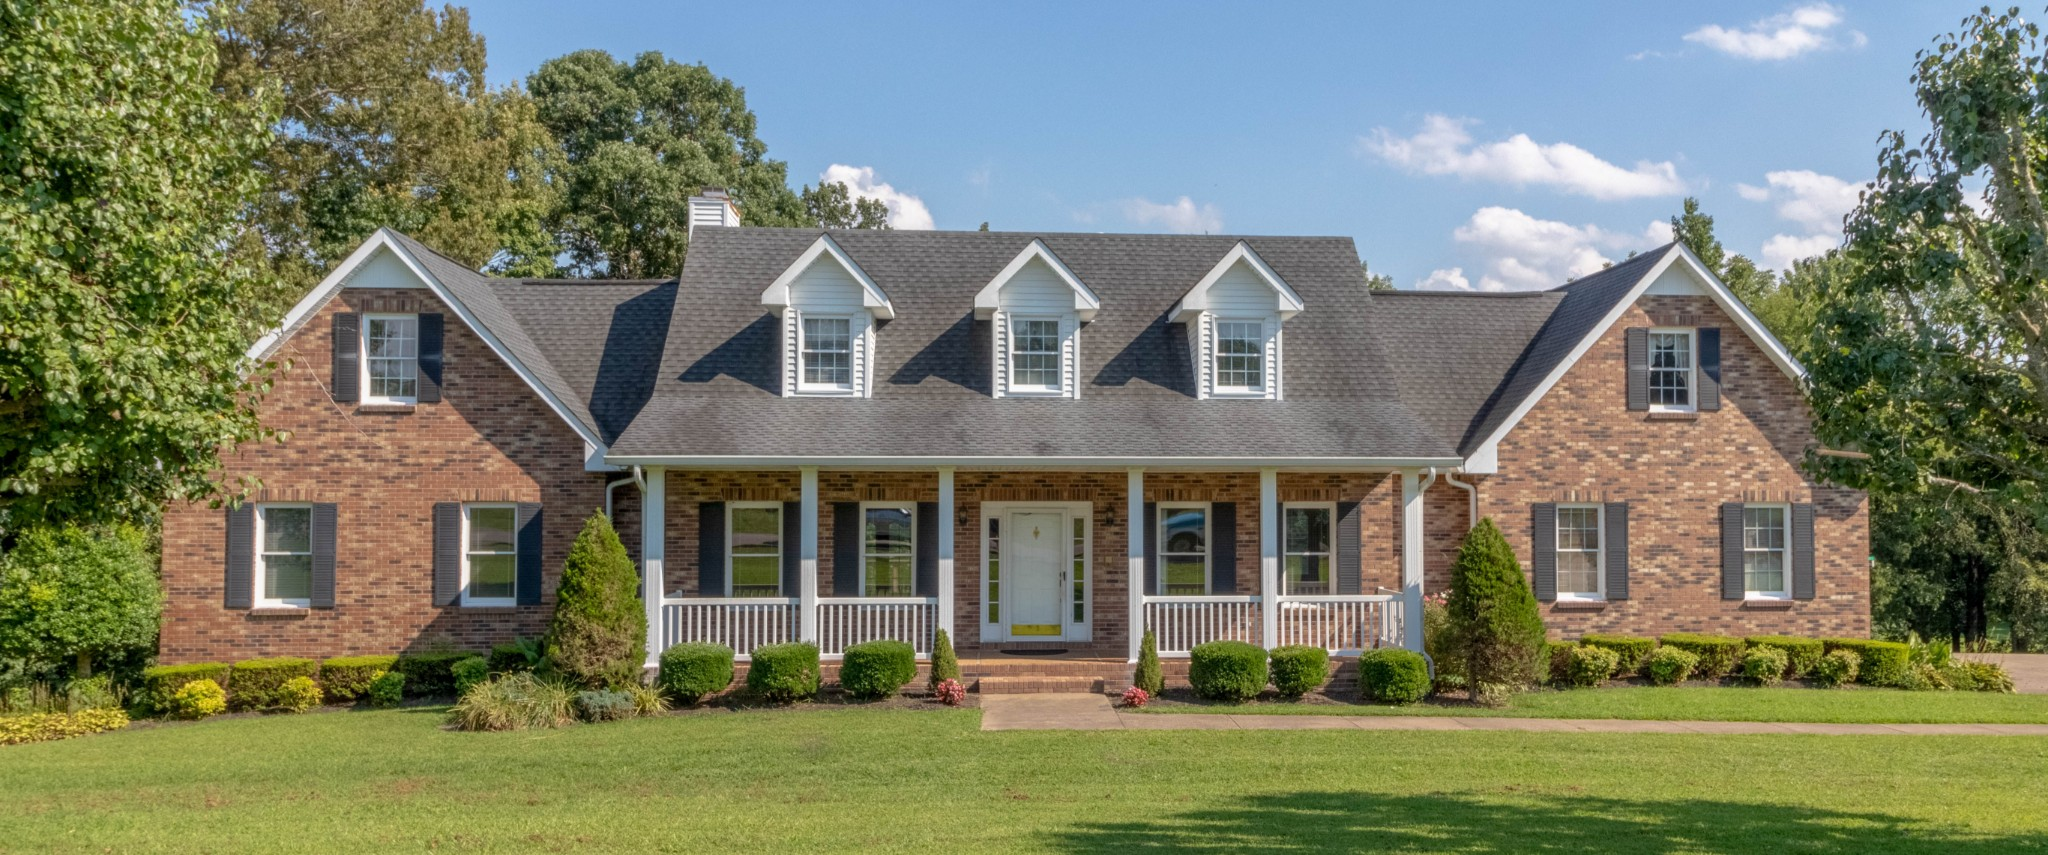 668 Hay Market Rd Property Photo - Clarksville, TN real estate listing